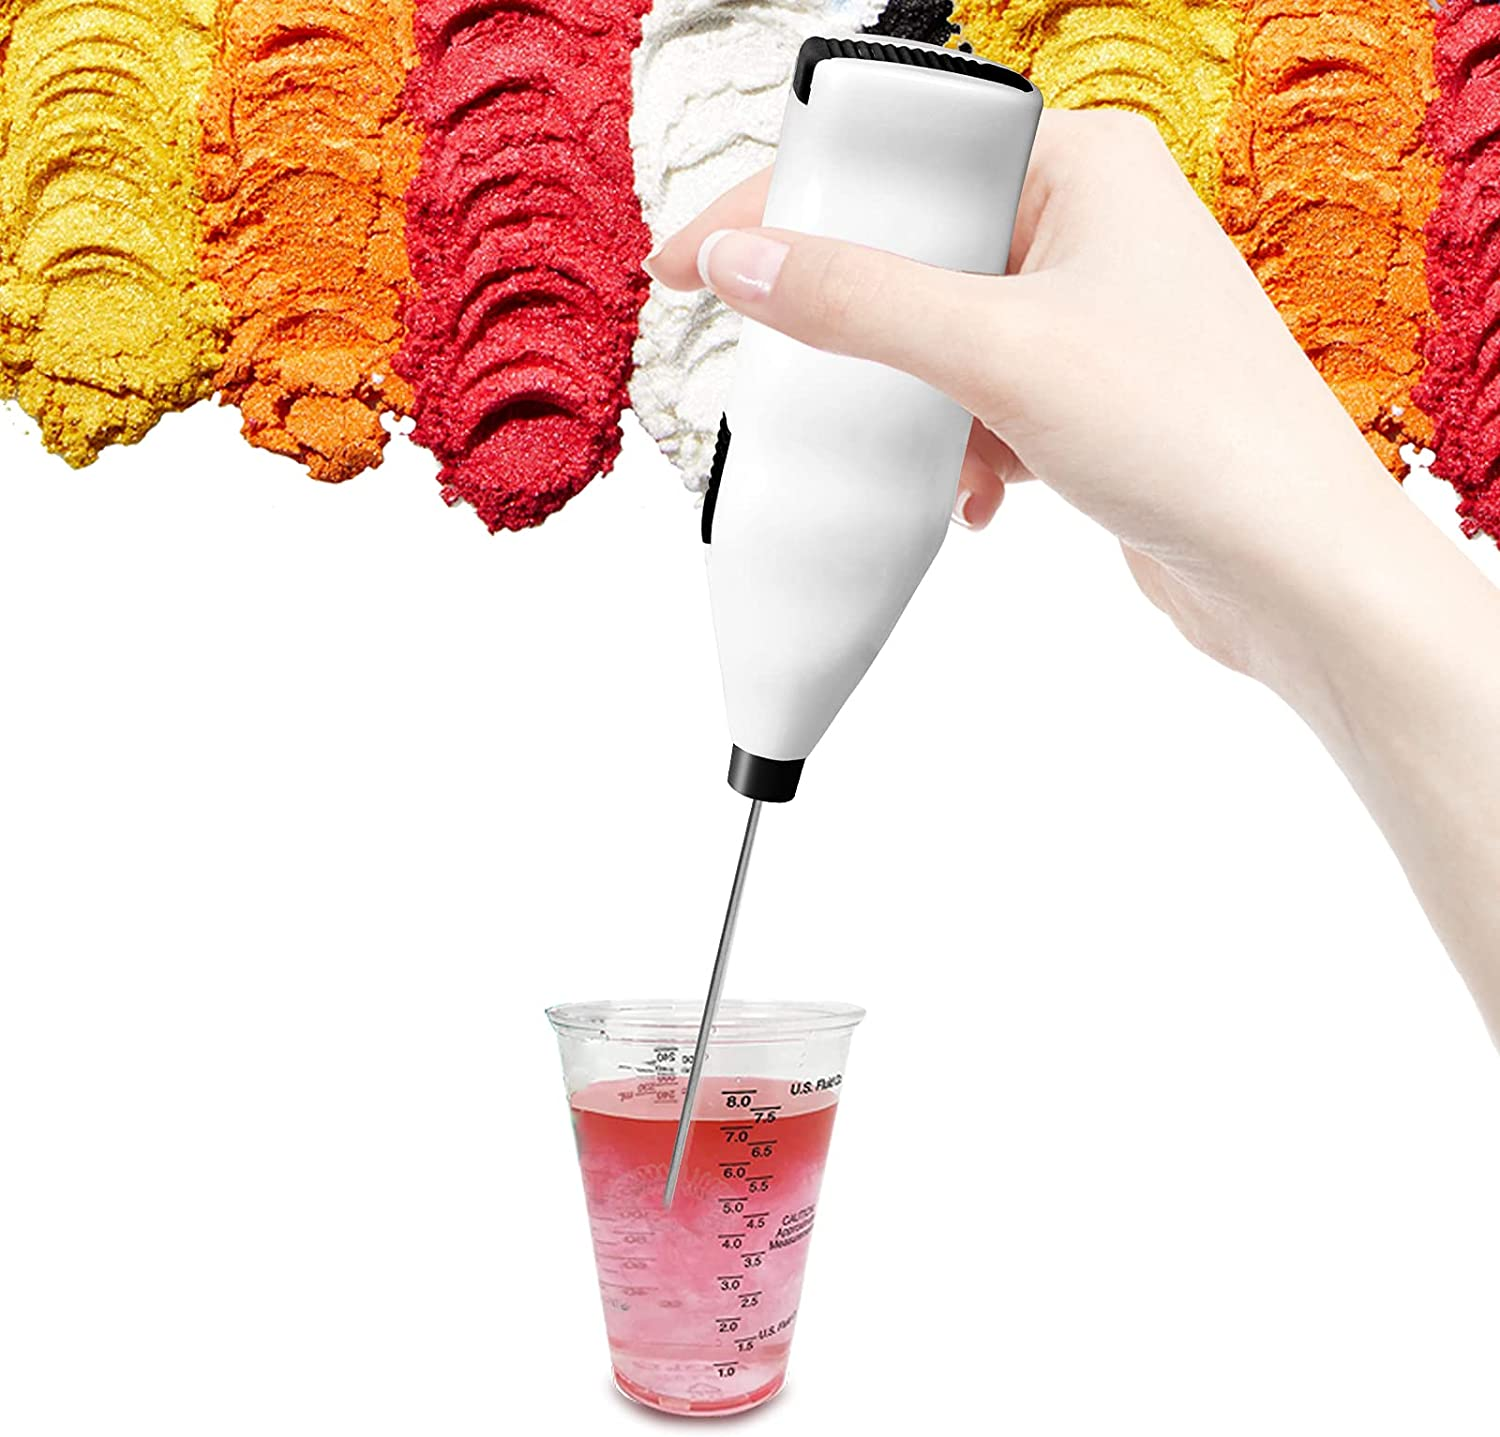 Epoxy Resin Electric Stirrer Hand-held Stainless Steel Drink Mixer Battery Type Spiral Resin Mixer Apply to Making DIY Glitter Tumbler Cups